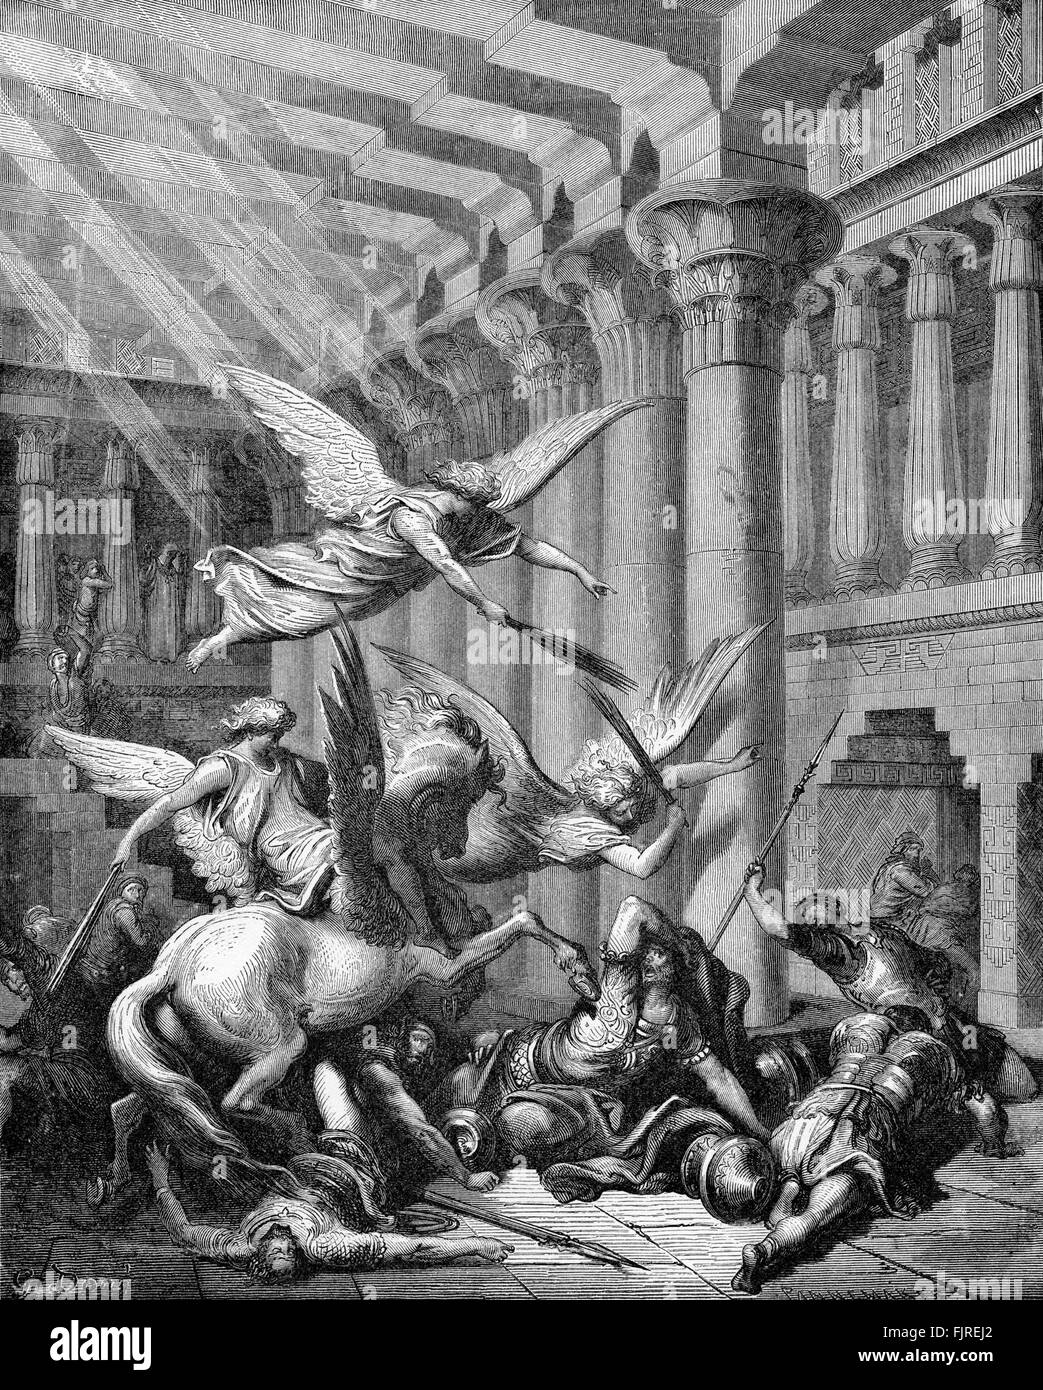 Heliodorus punished in the temple (2 Maccabees chapter III), illustration by Gustave Doré (1832 – 1883) Stock Photo